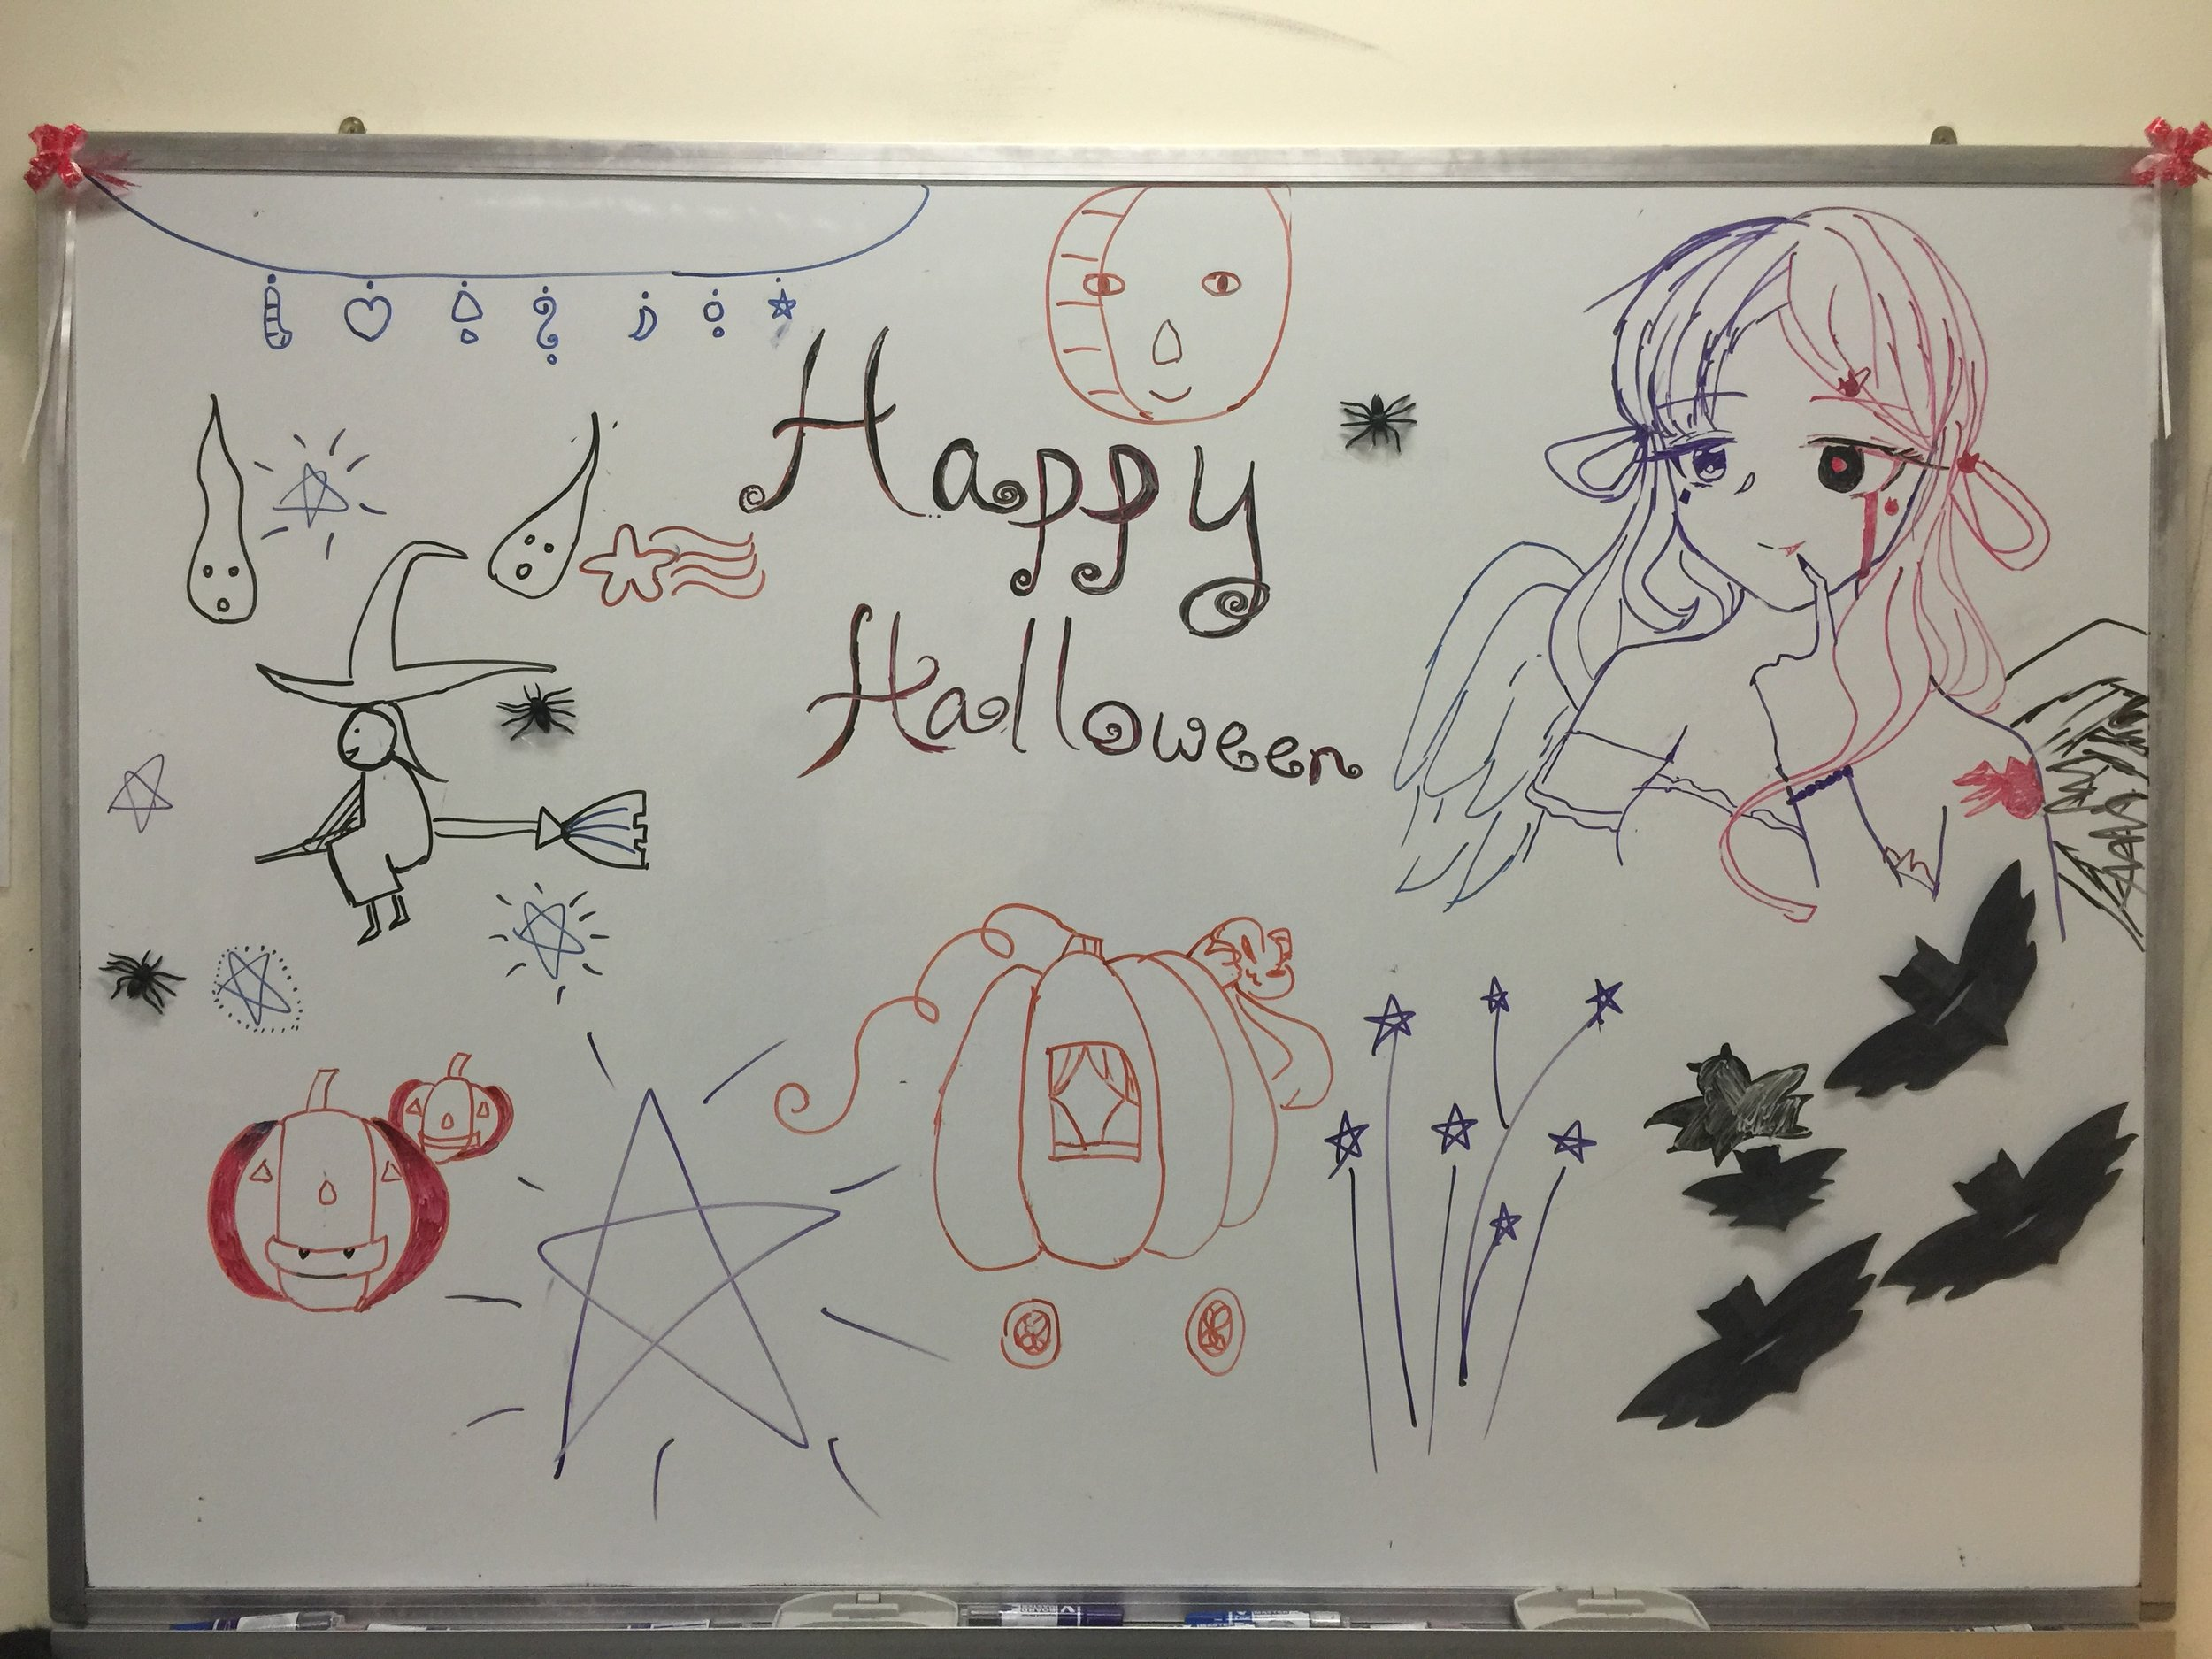 Happy Halloween_P5 Math class (2).JPG